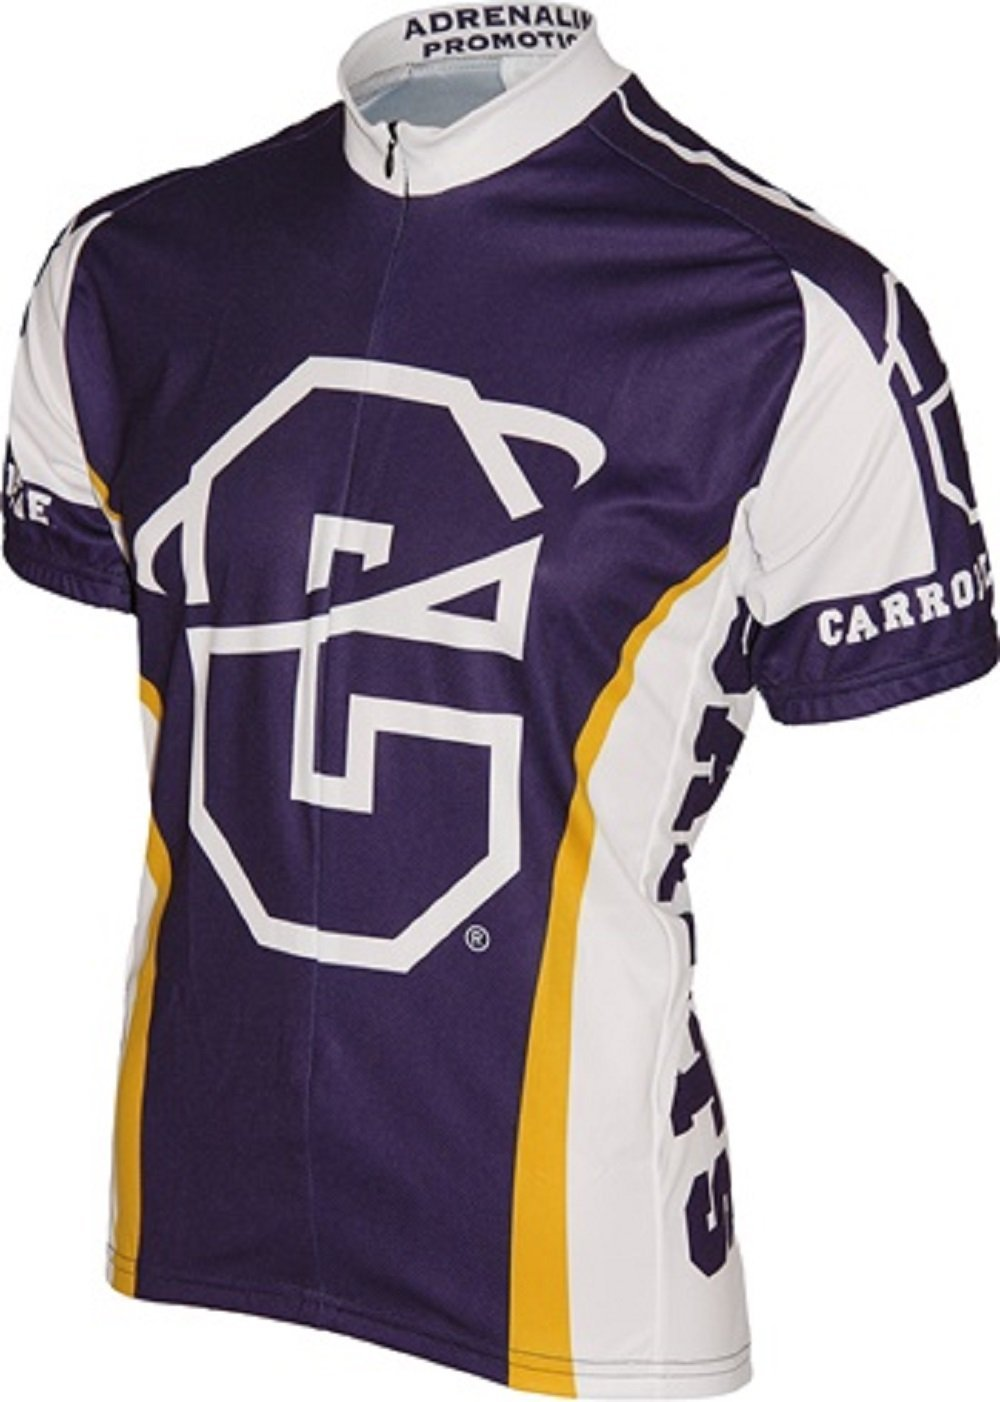 NCAA Carroll College Fighting Saints Cycling Jersey(China (Mainland))